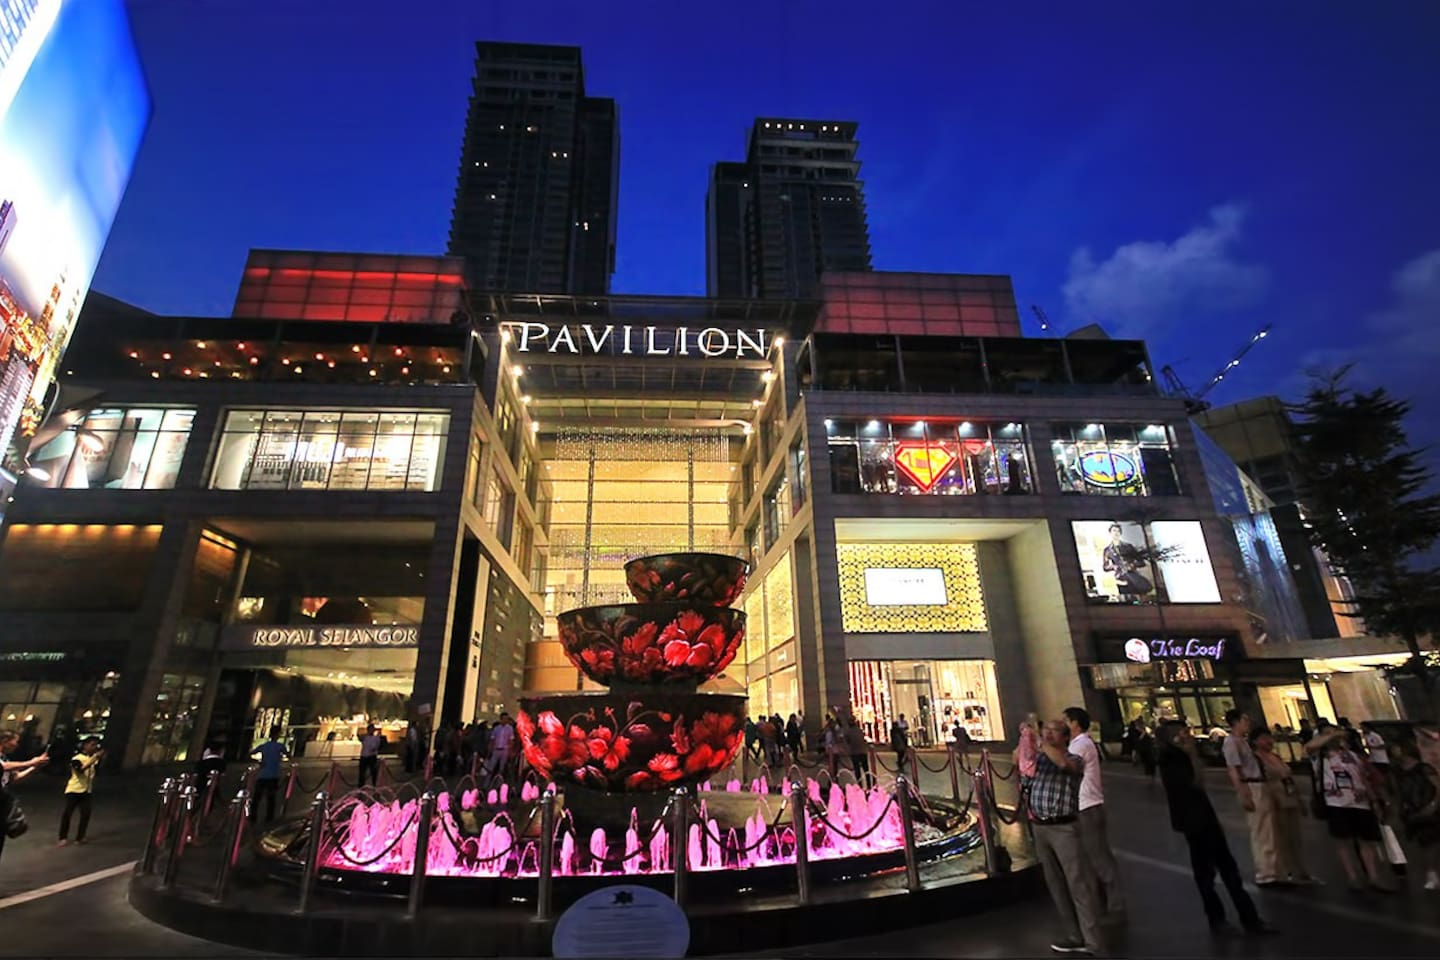 Pavilion Kuala Lumpur was built on the former site of Bukit Bintang Girls' School, the oldest school in Kuala Lumpur . Opened on 20 September 2007, the development consists of a premiere shopping centre, 2 blocks of serviced apartments